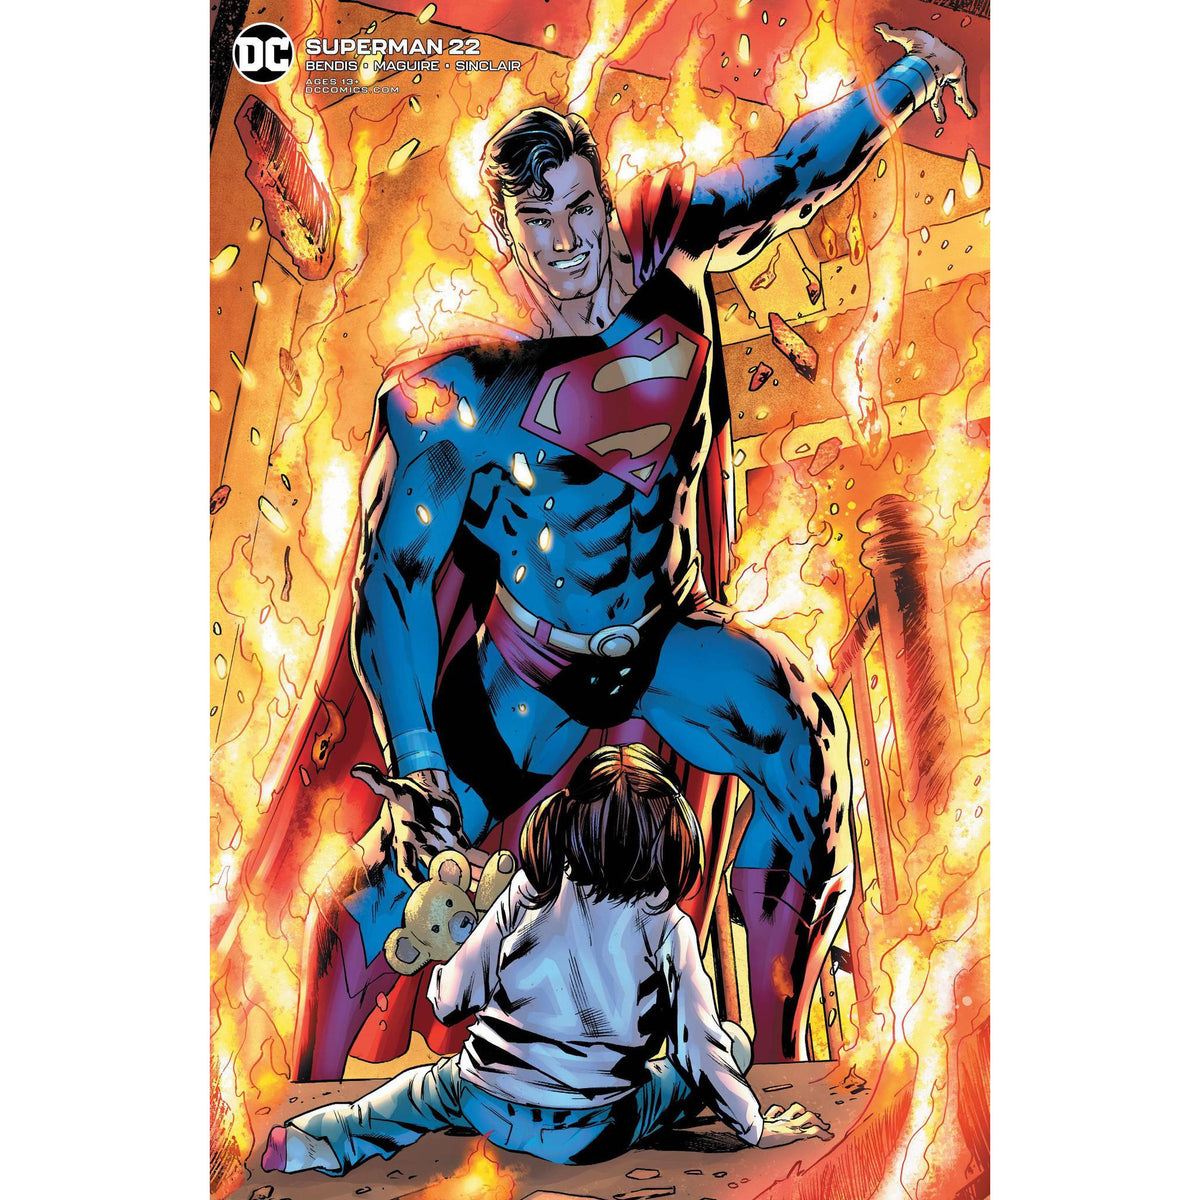 SUPERMAN #22 - BRYAN HITCH VARIANT COVER